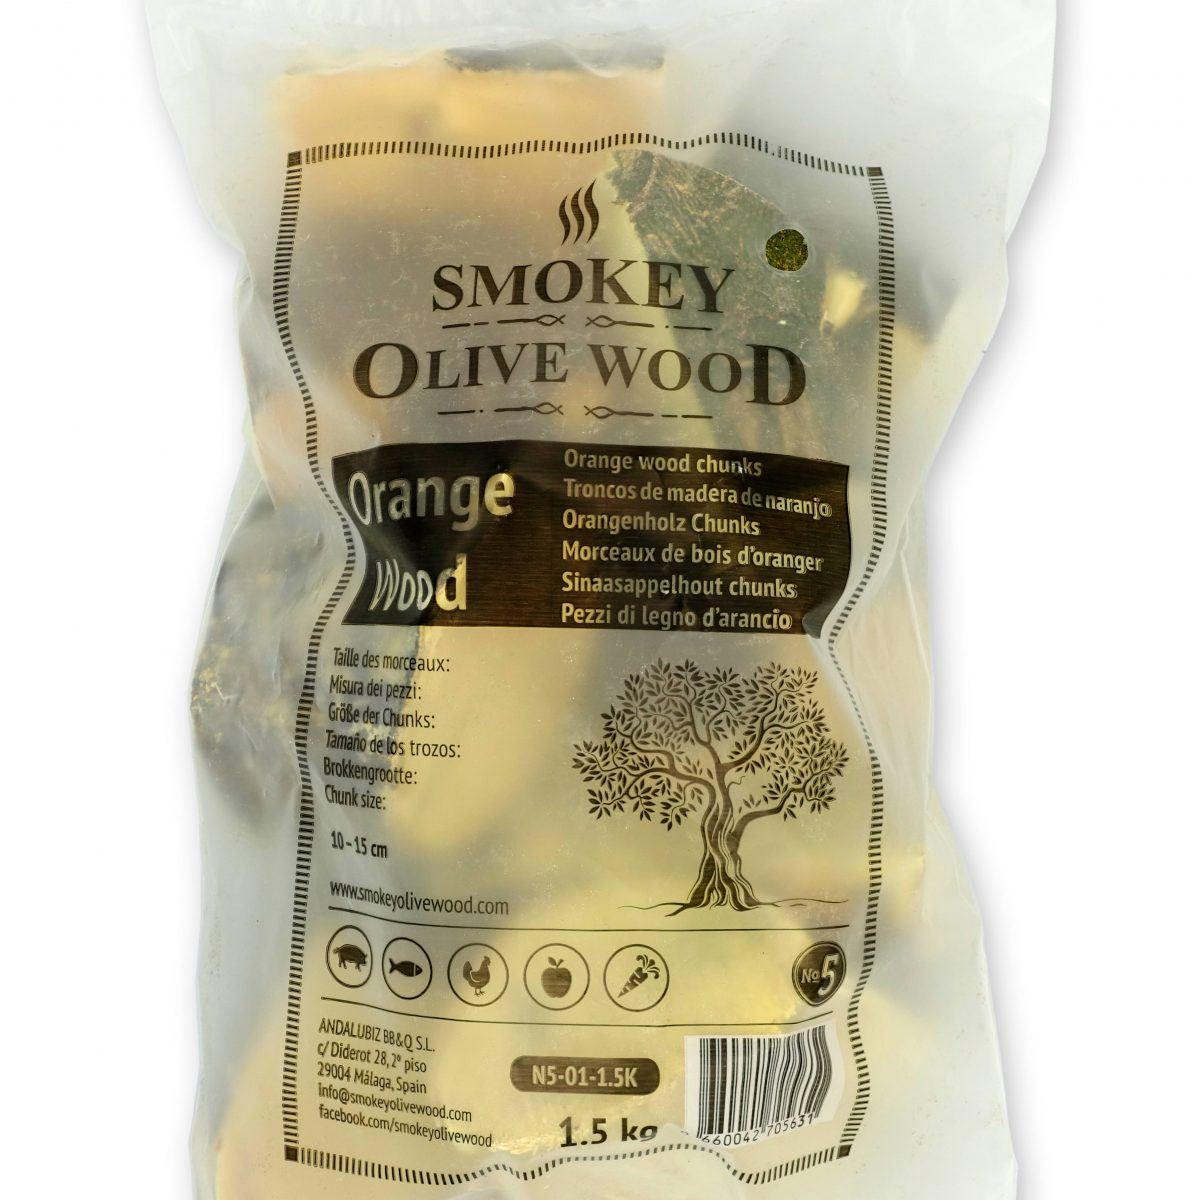 Rookchunks nr.5 1,5 kg sinaasappel Smokey Olive Wood